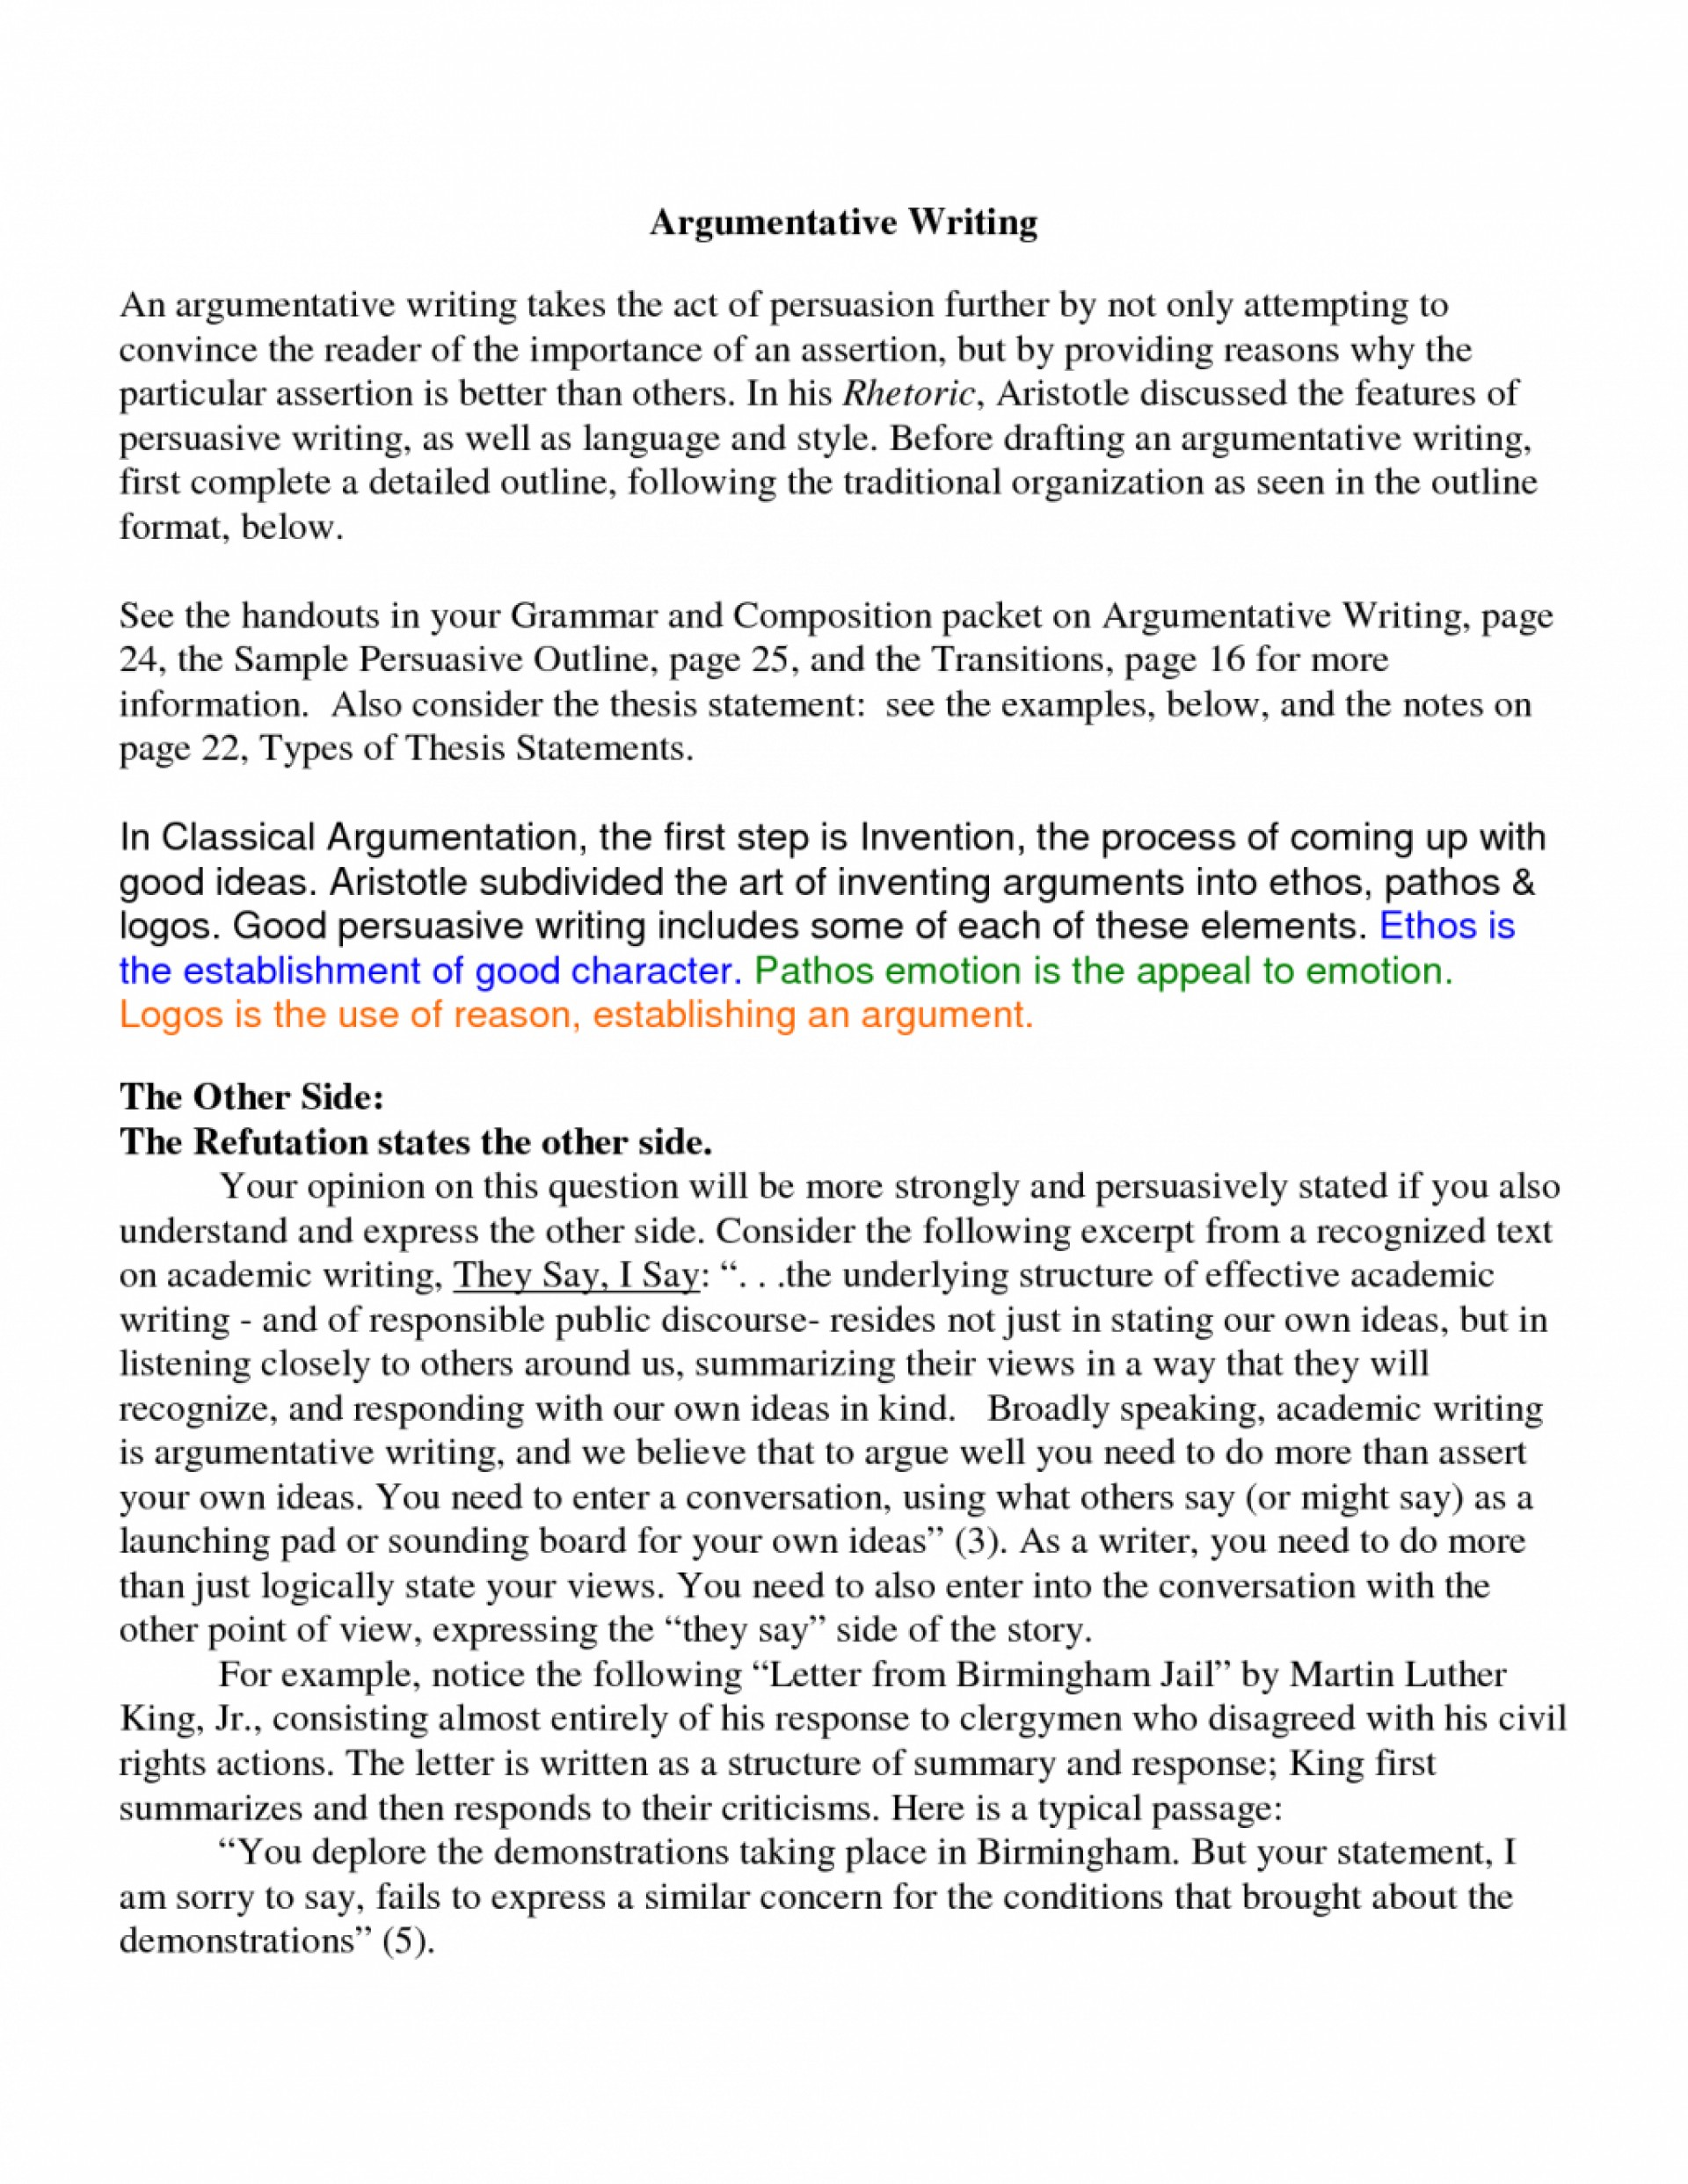 013 Marvelous Essay Persuasiventatives Picture Ideas Template Help Writing Popular Online 1024x1325 Frightening Discount Code Essays Uk English 1920